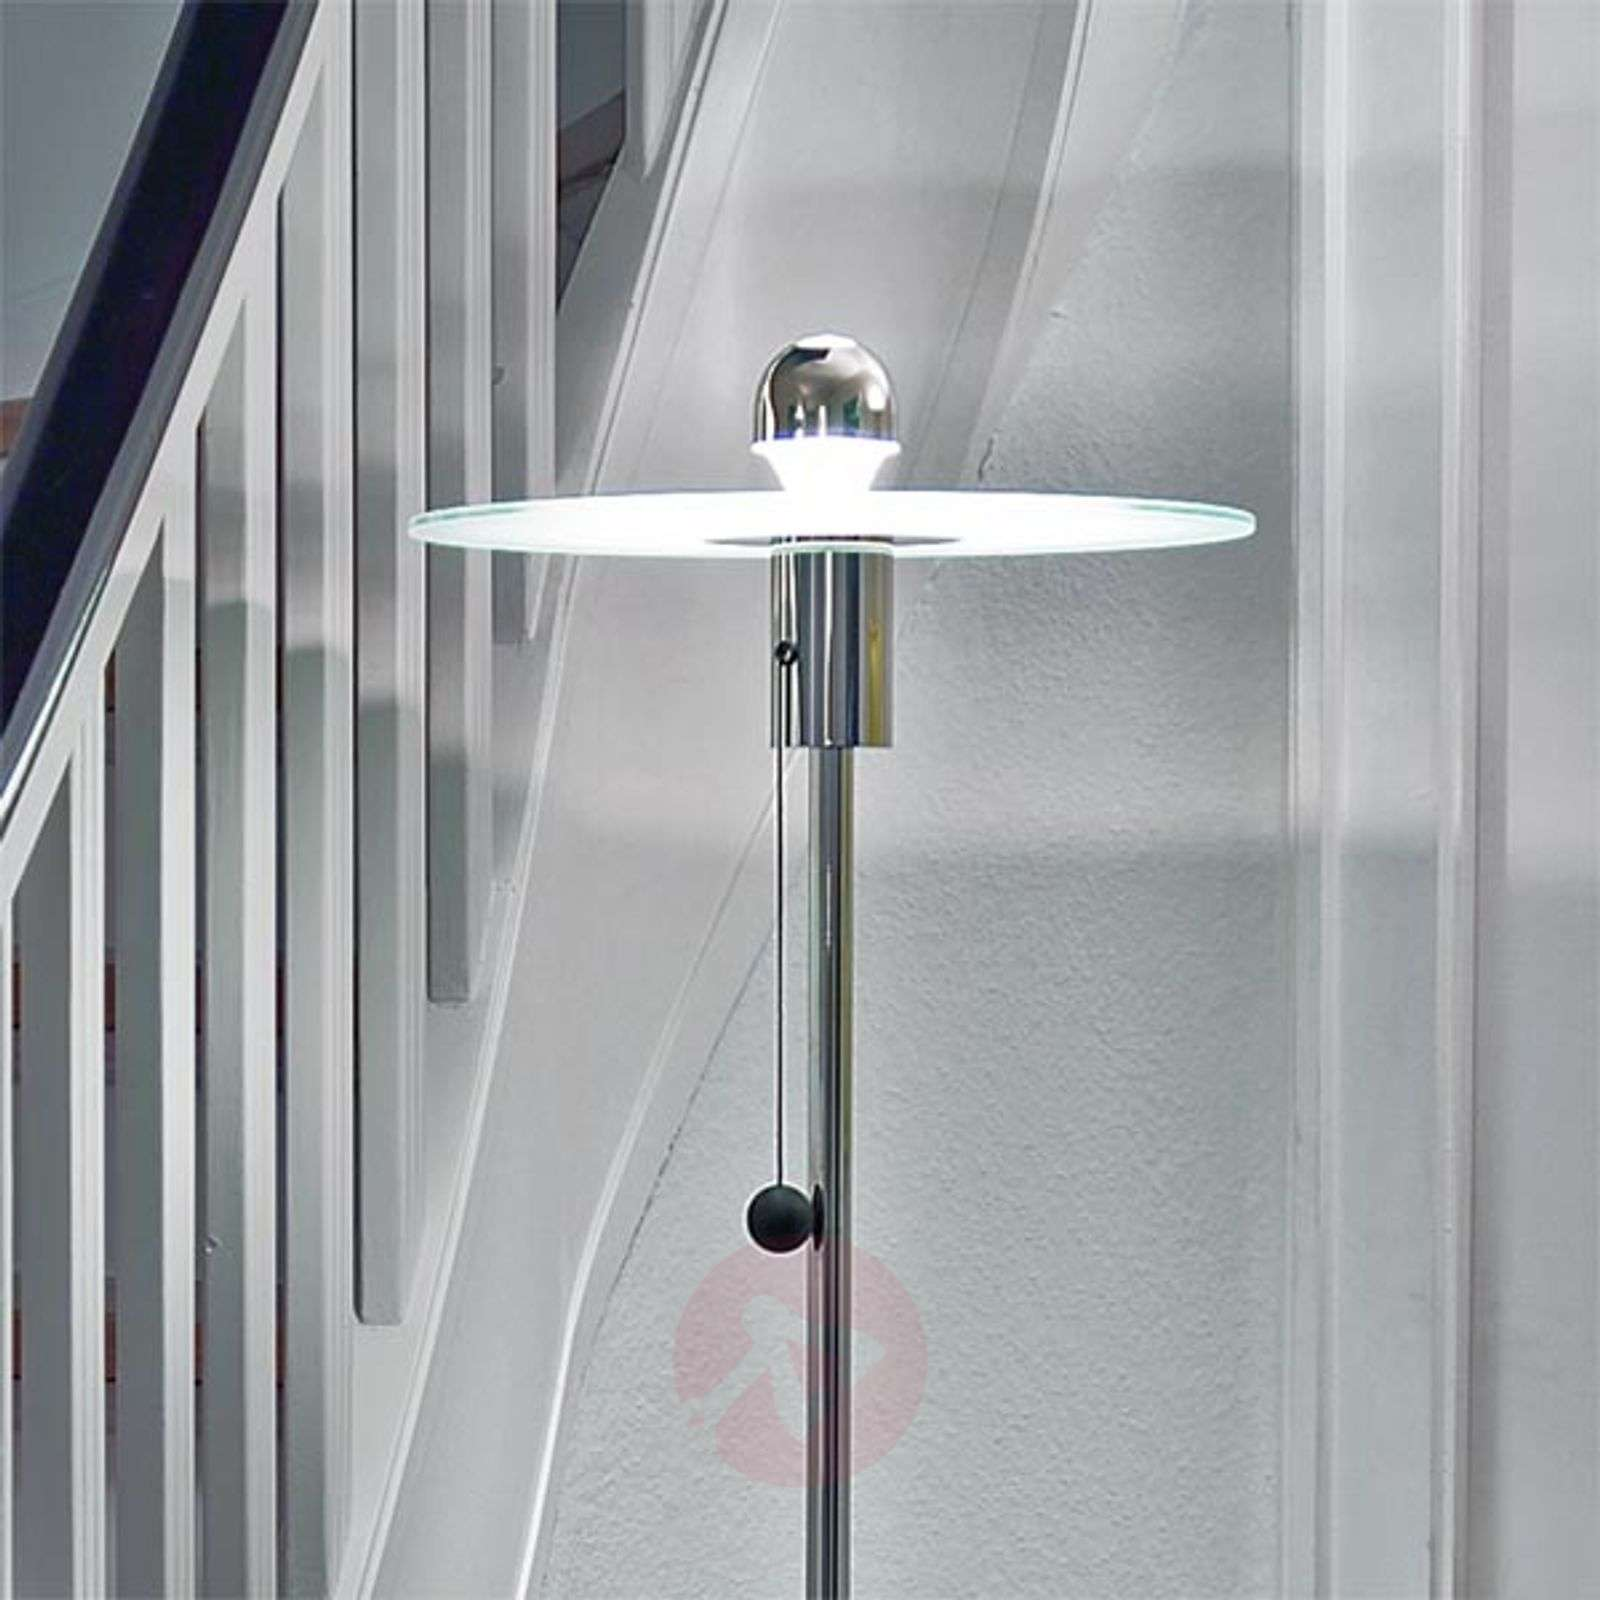 Original Bauhaus floor lamp by Gyula Pap-9030015-01